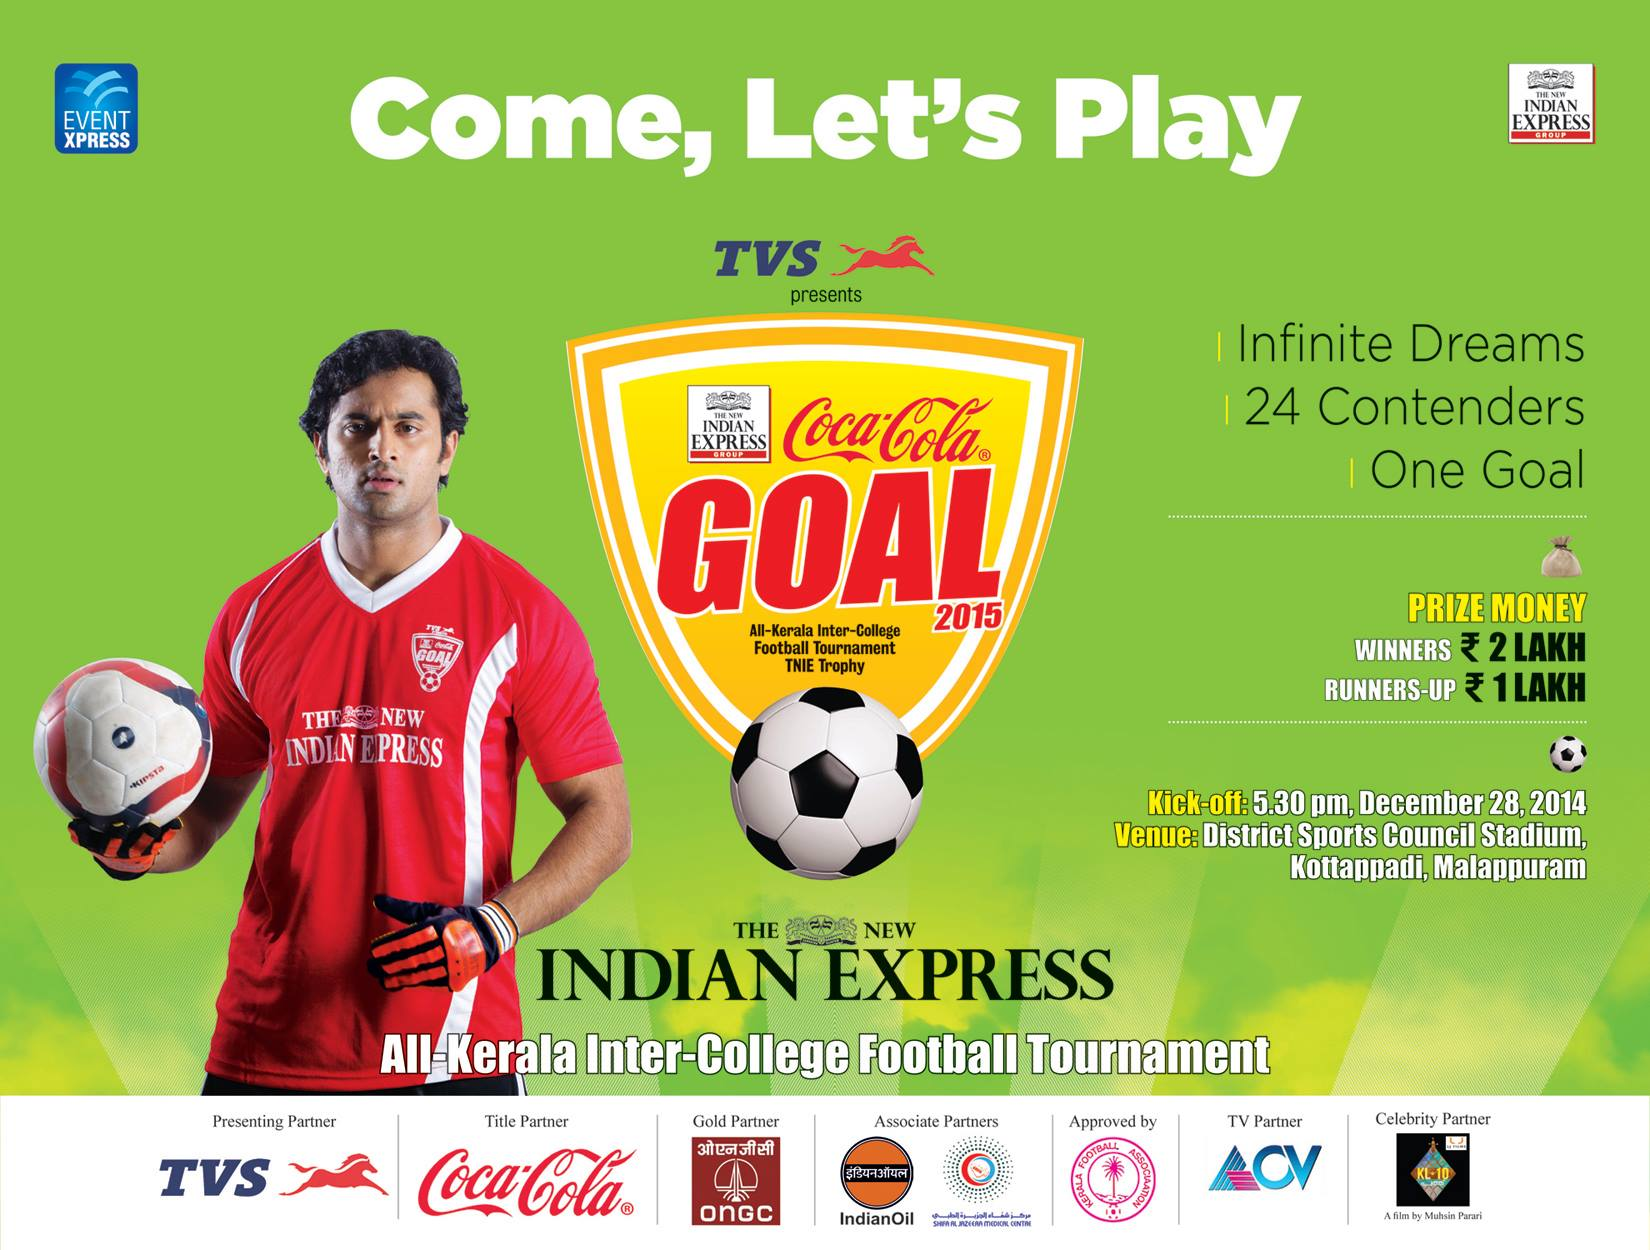 Goal, Football, Tournament, college, Kerala, Football, Soccer, Indian Express, TVS,